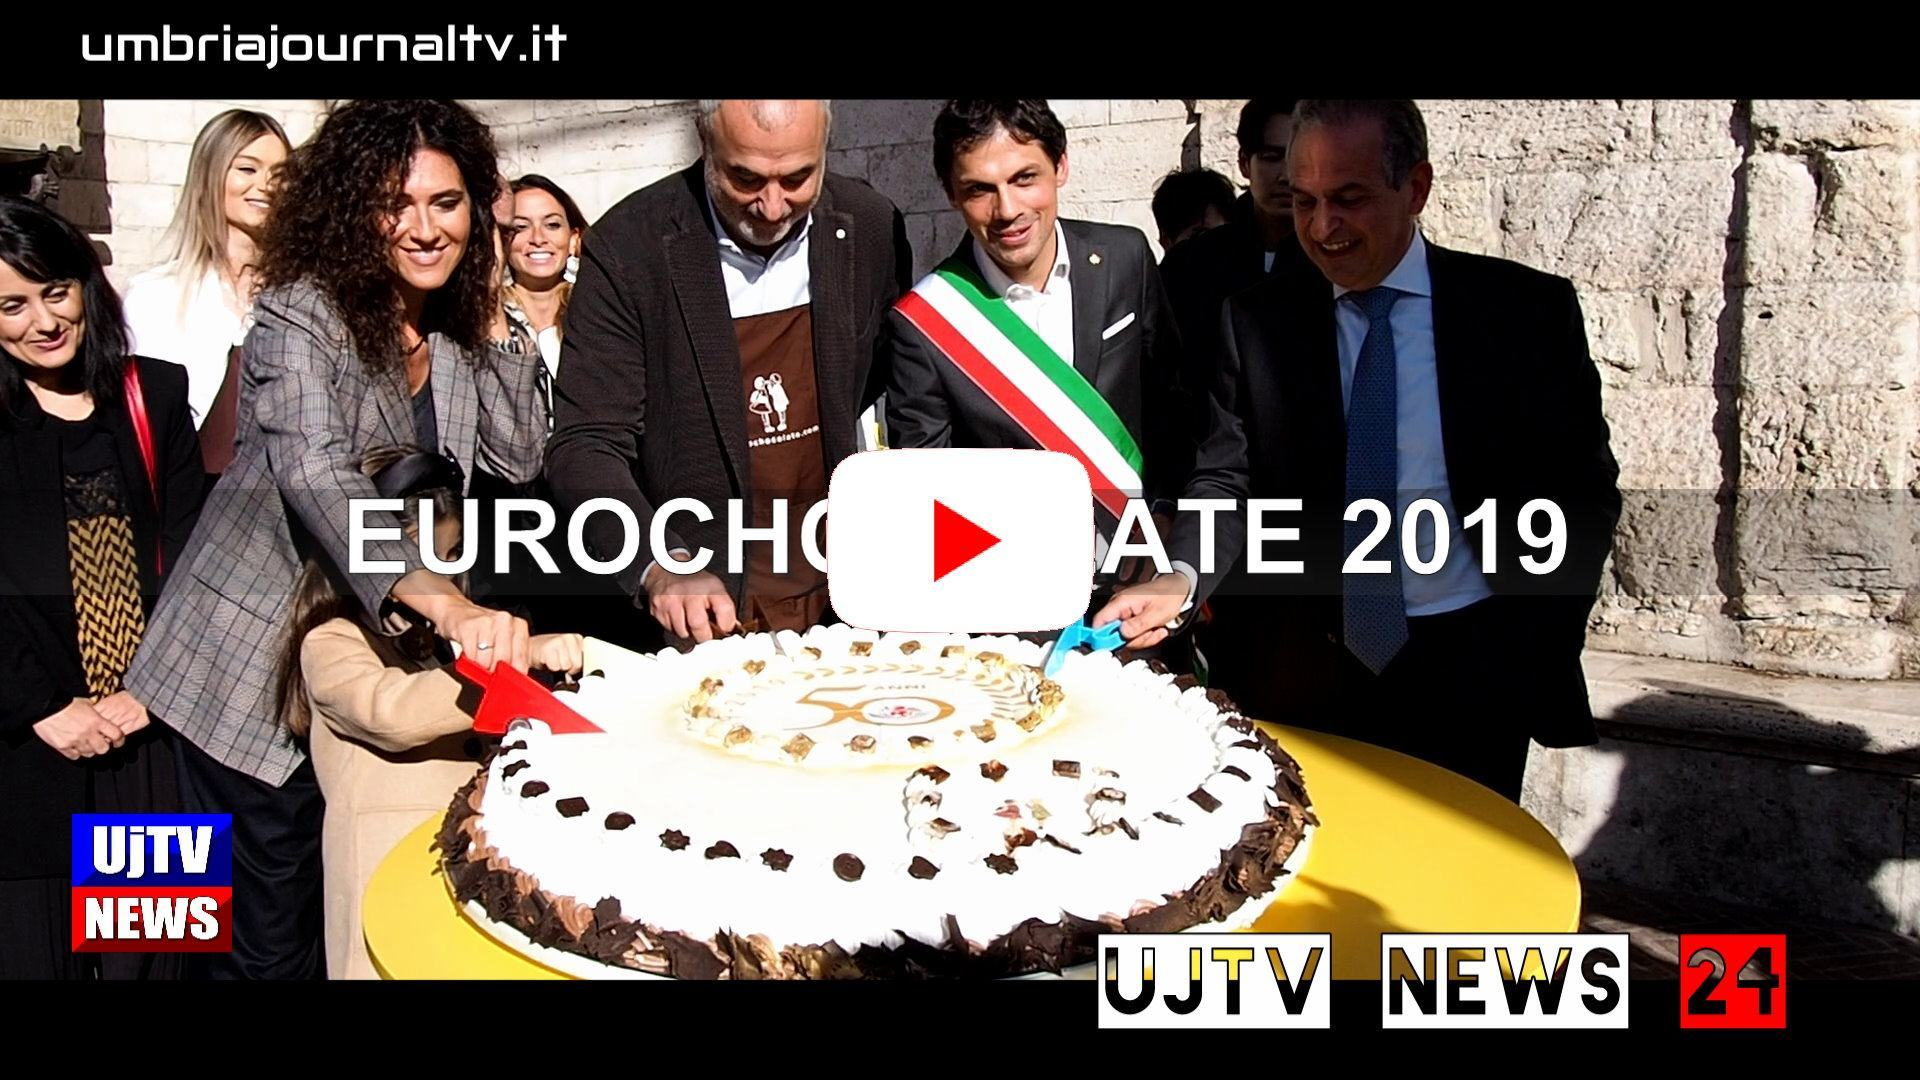 Eurochocolate, siete pronti ad attaccare bottone? | Intervista